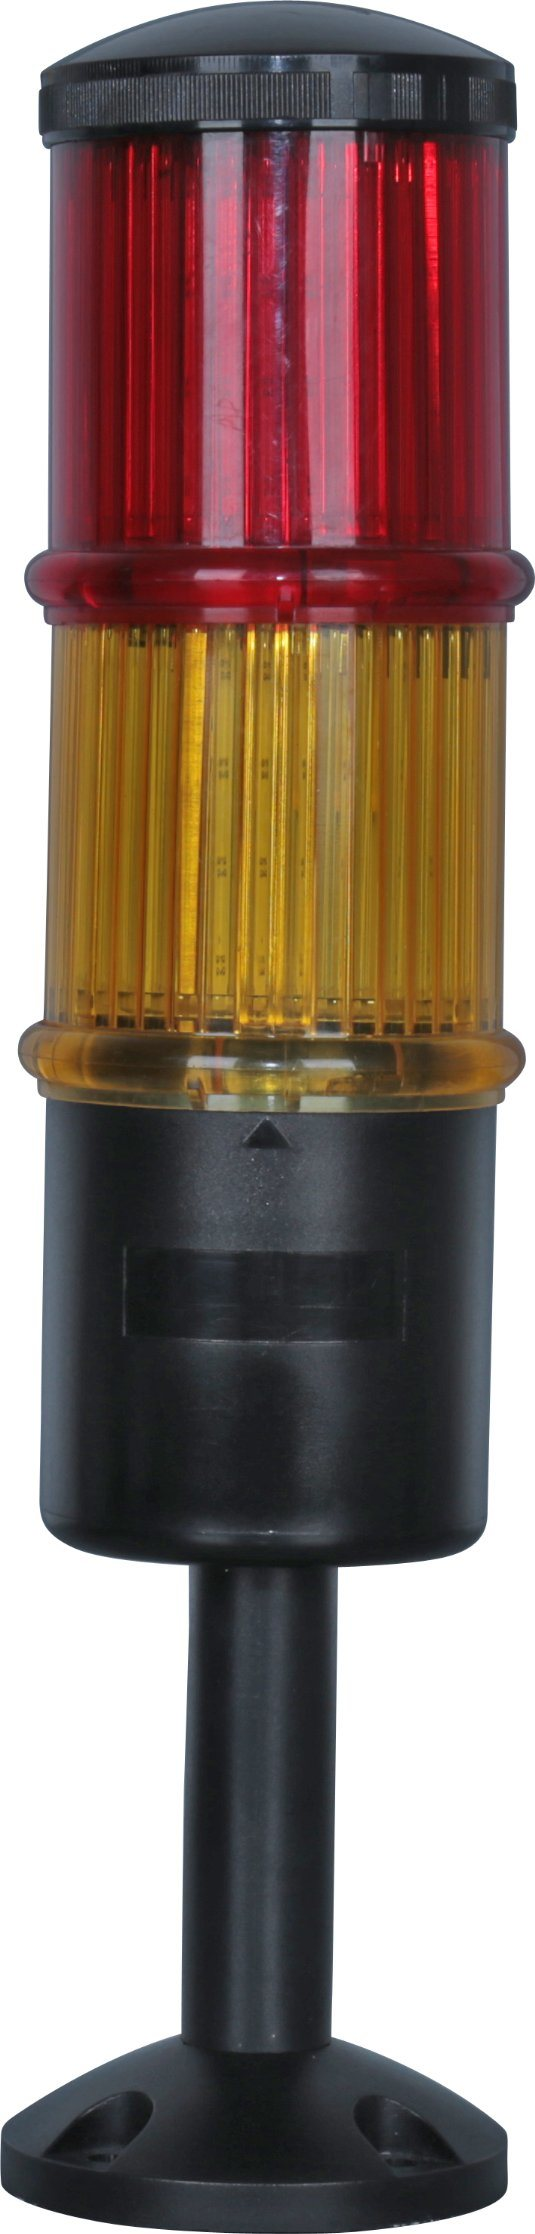 24V Signal Tower Light/Stack Light/Warning Light with Buzzer and Flash Function